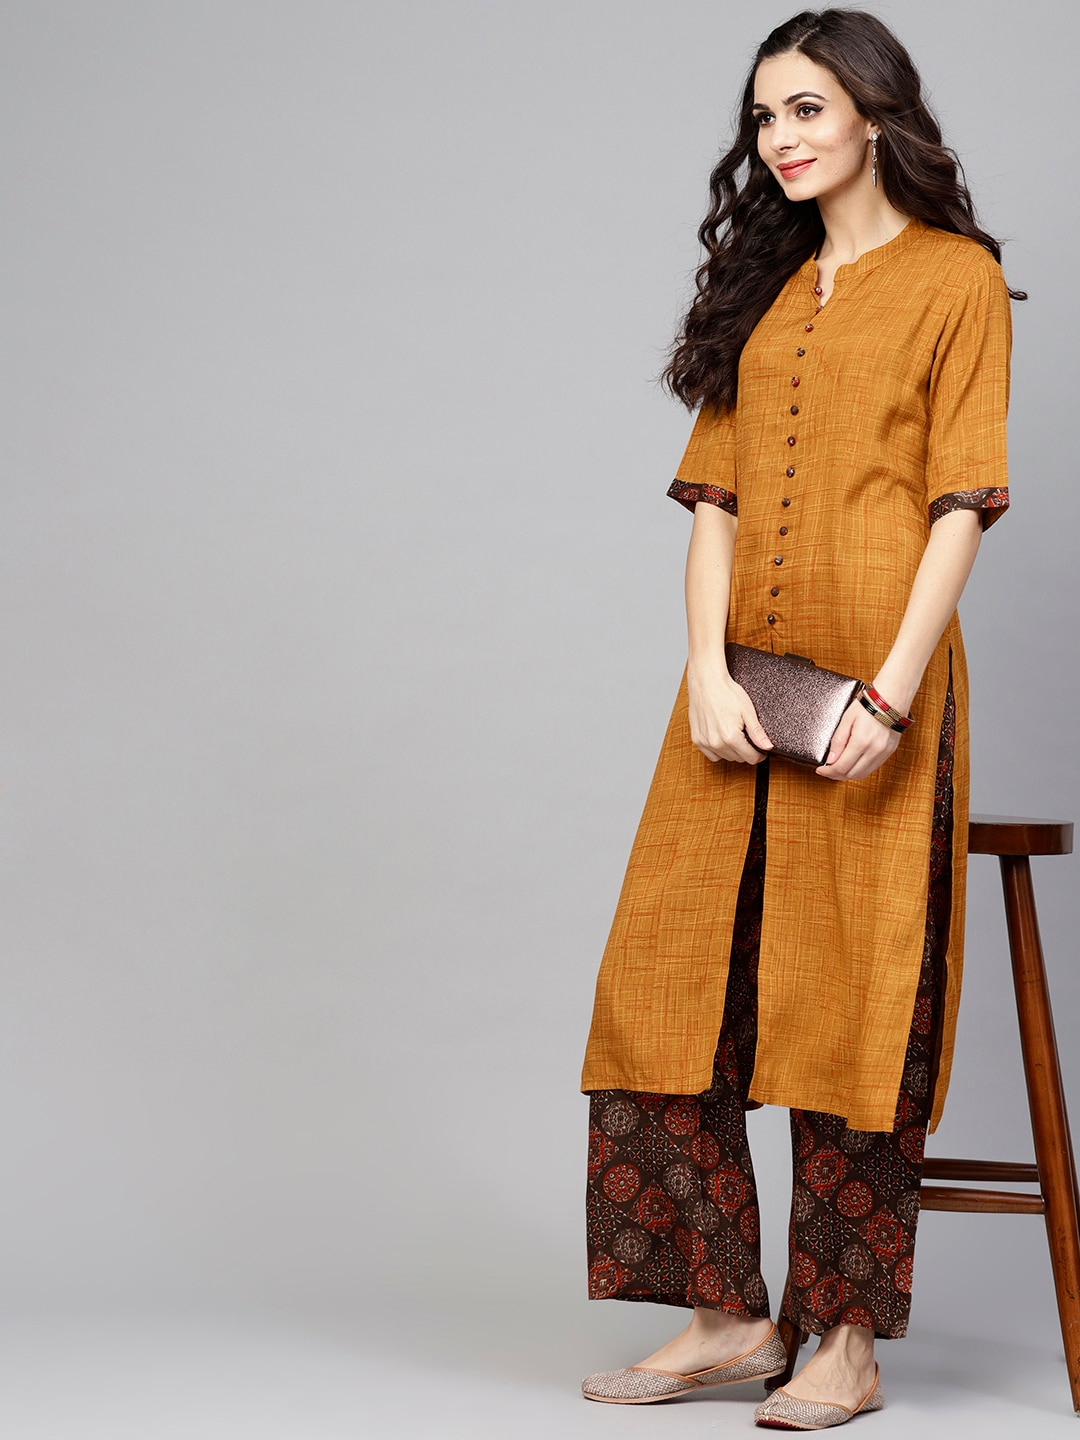 aab03878c Aks Kurtas Sets - Buy Aks Kurtas Sets online in India